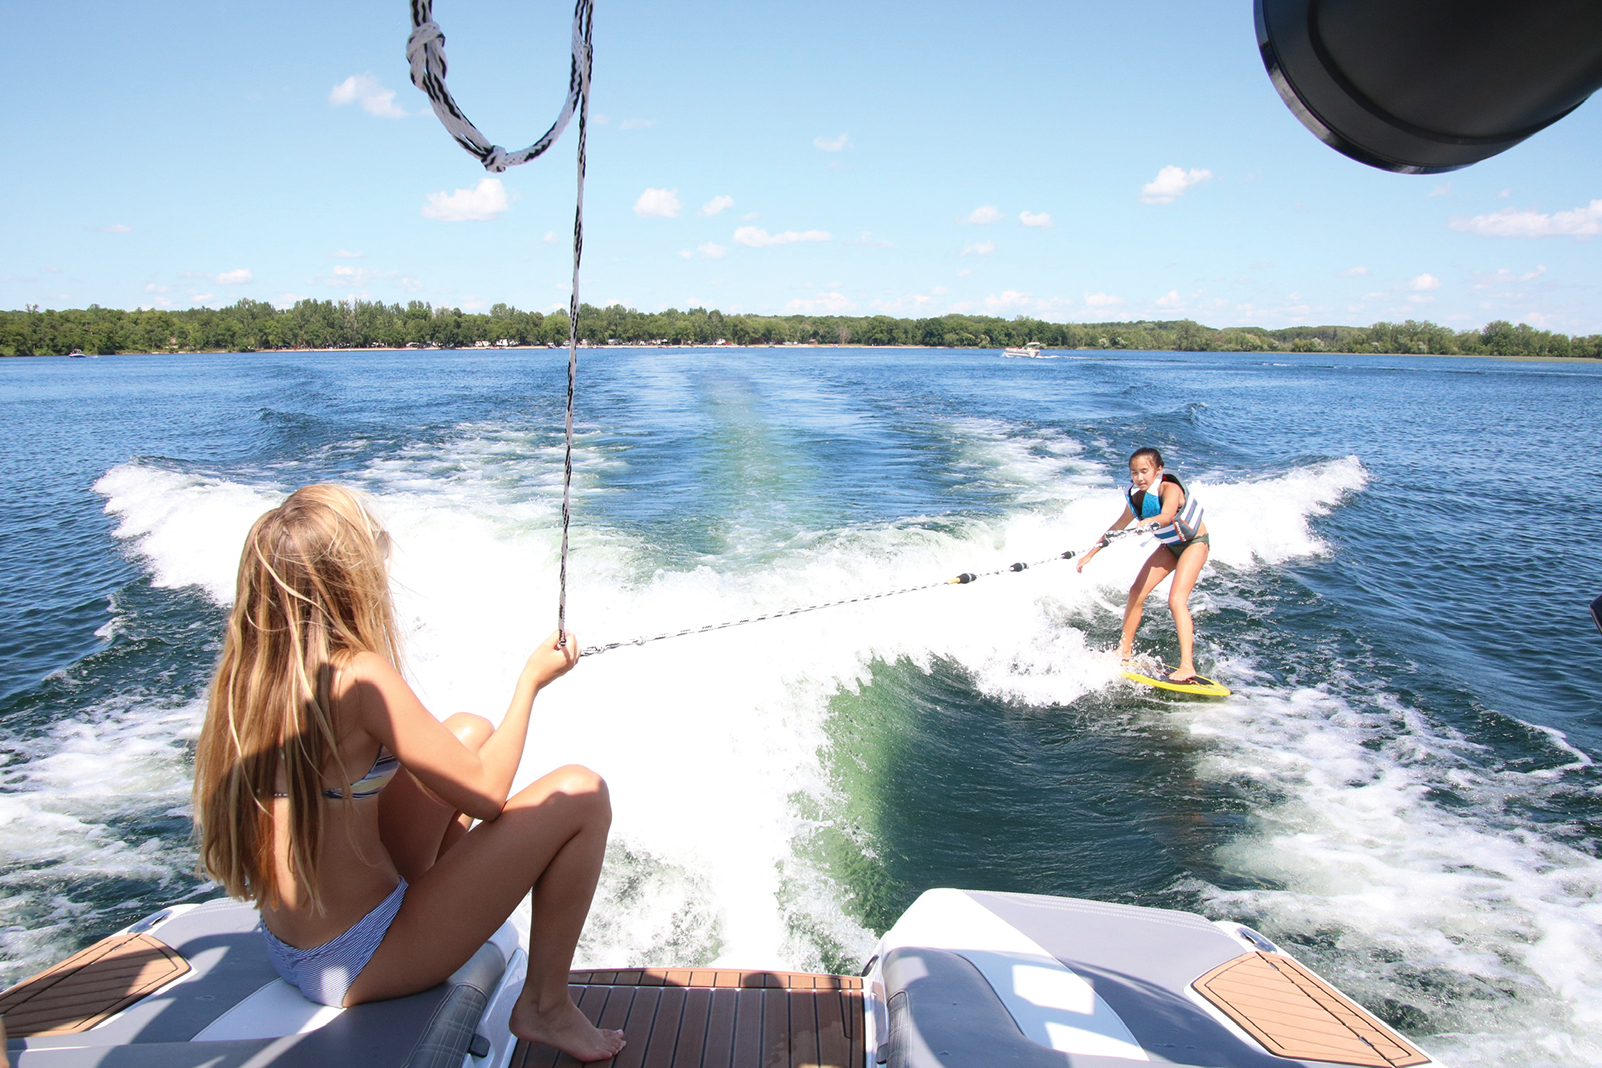 Hangloose MN specializes in wakesurfing and paddle boarding rentals and classes on Lake Carlos